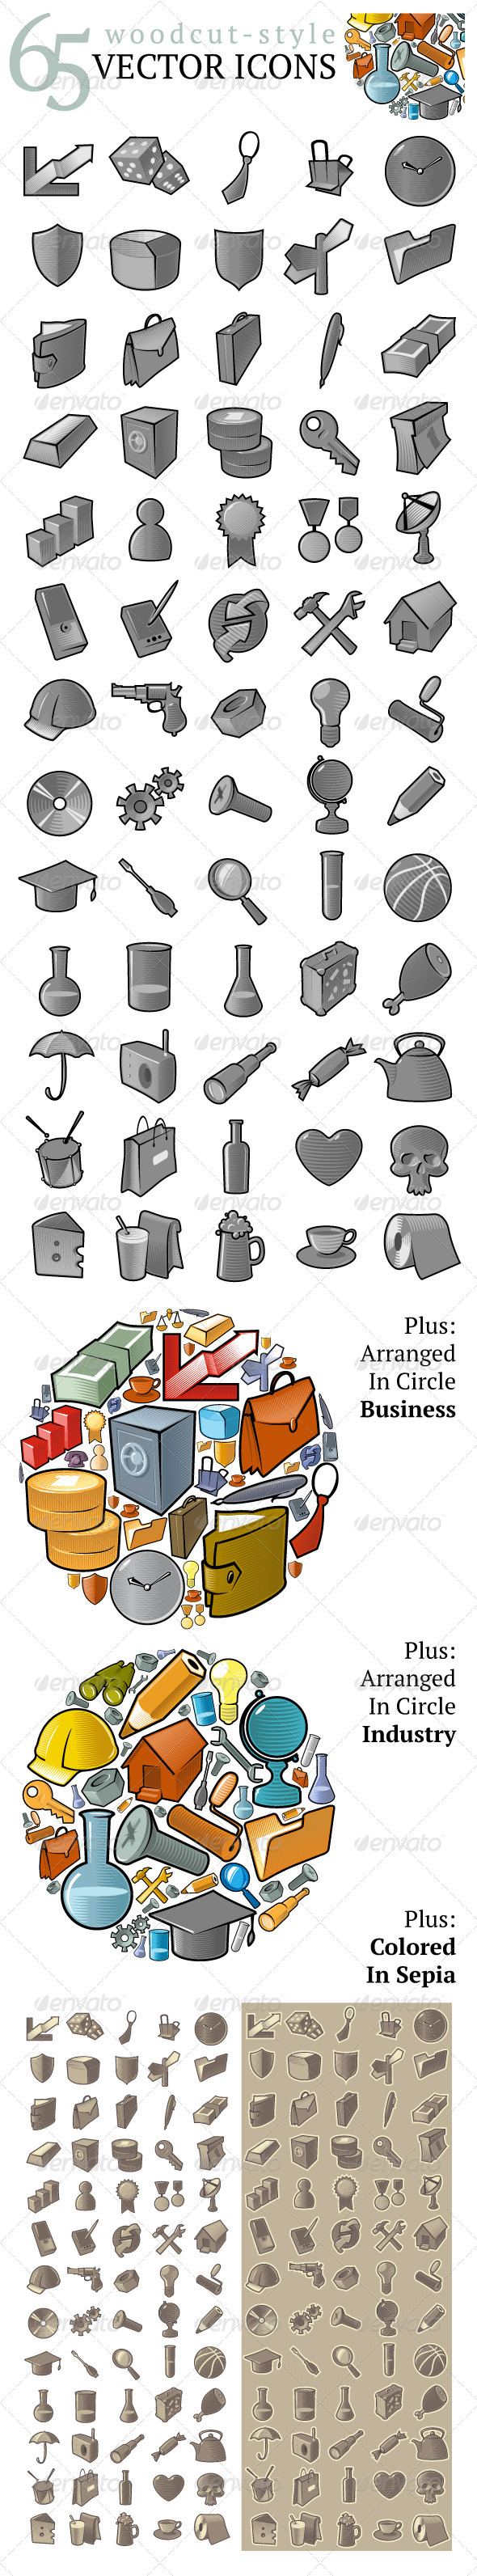 65 Woodcut-Style Vector Icons - Web Icons